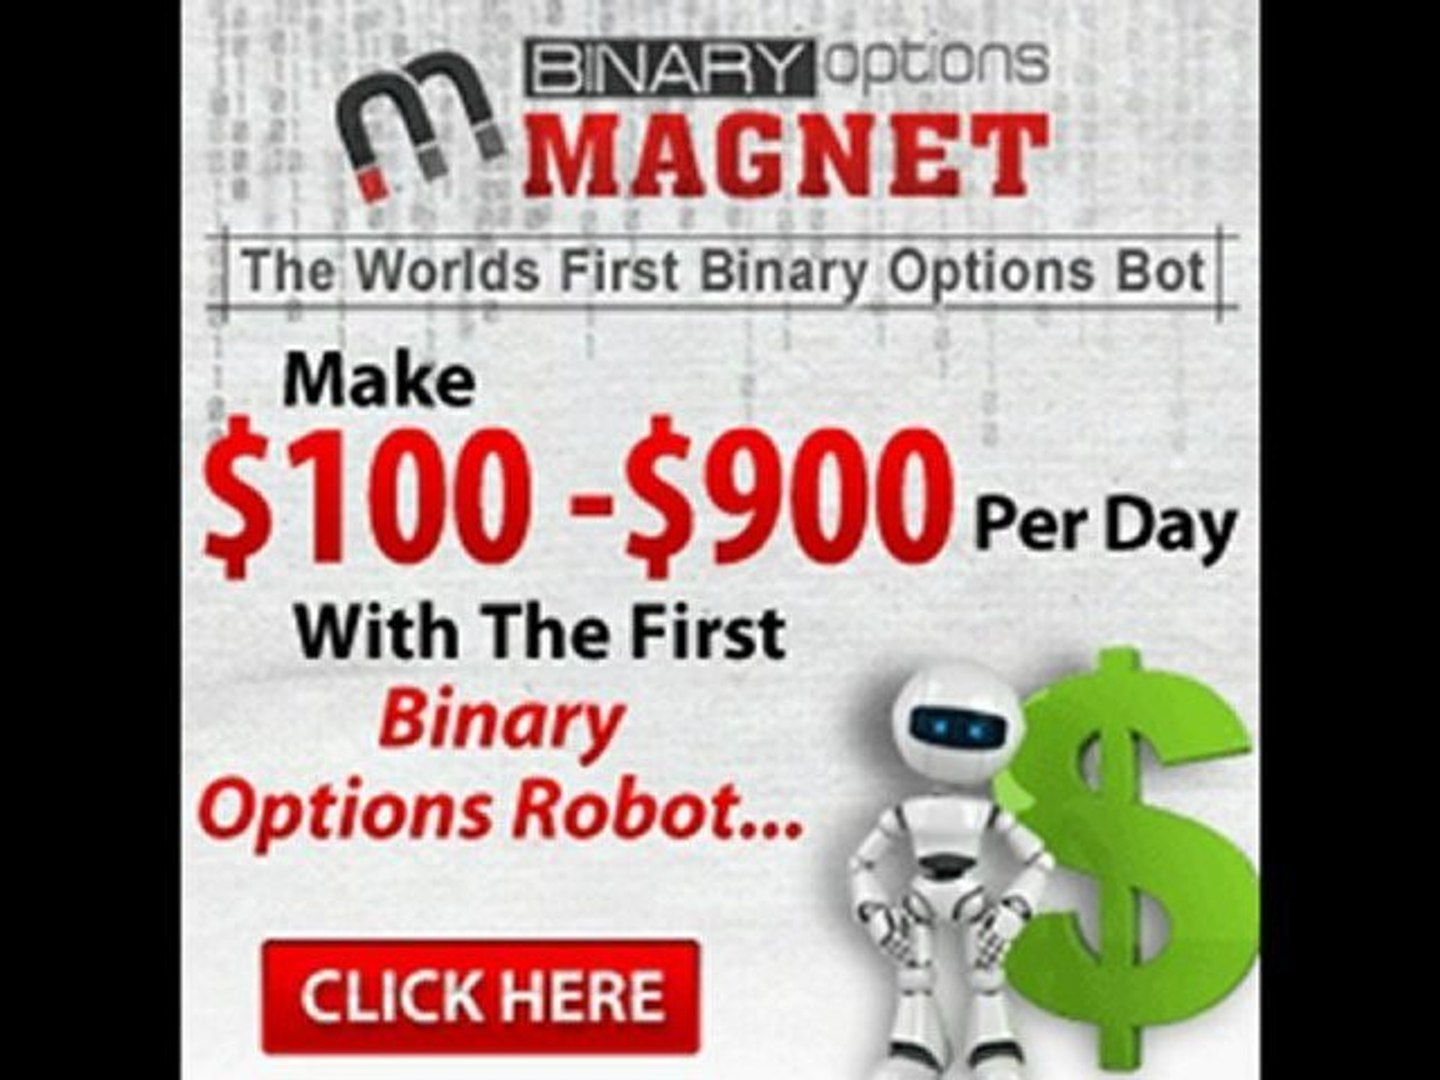 Binary options magnet software football both teams to score betting tips